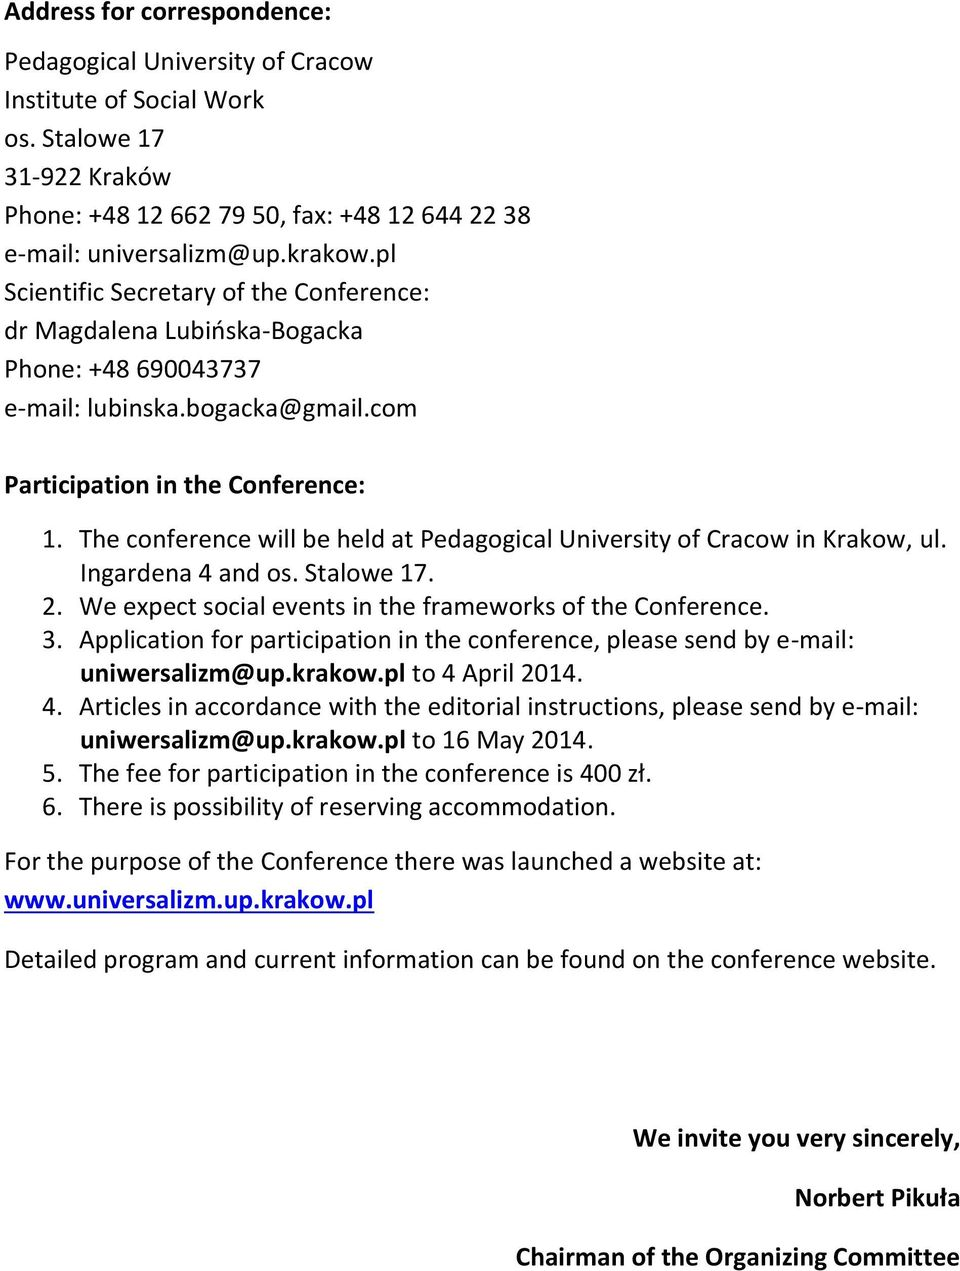 The conference will be held at Pedagogical University of Cracow in Krakow, ul. Ingardena 4 and os. Stalowe 17. 2. We expect social events in the frameworks of the Conference. 3.